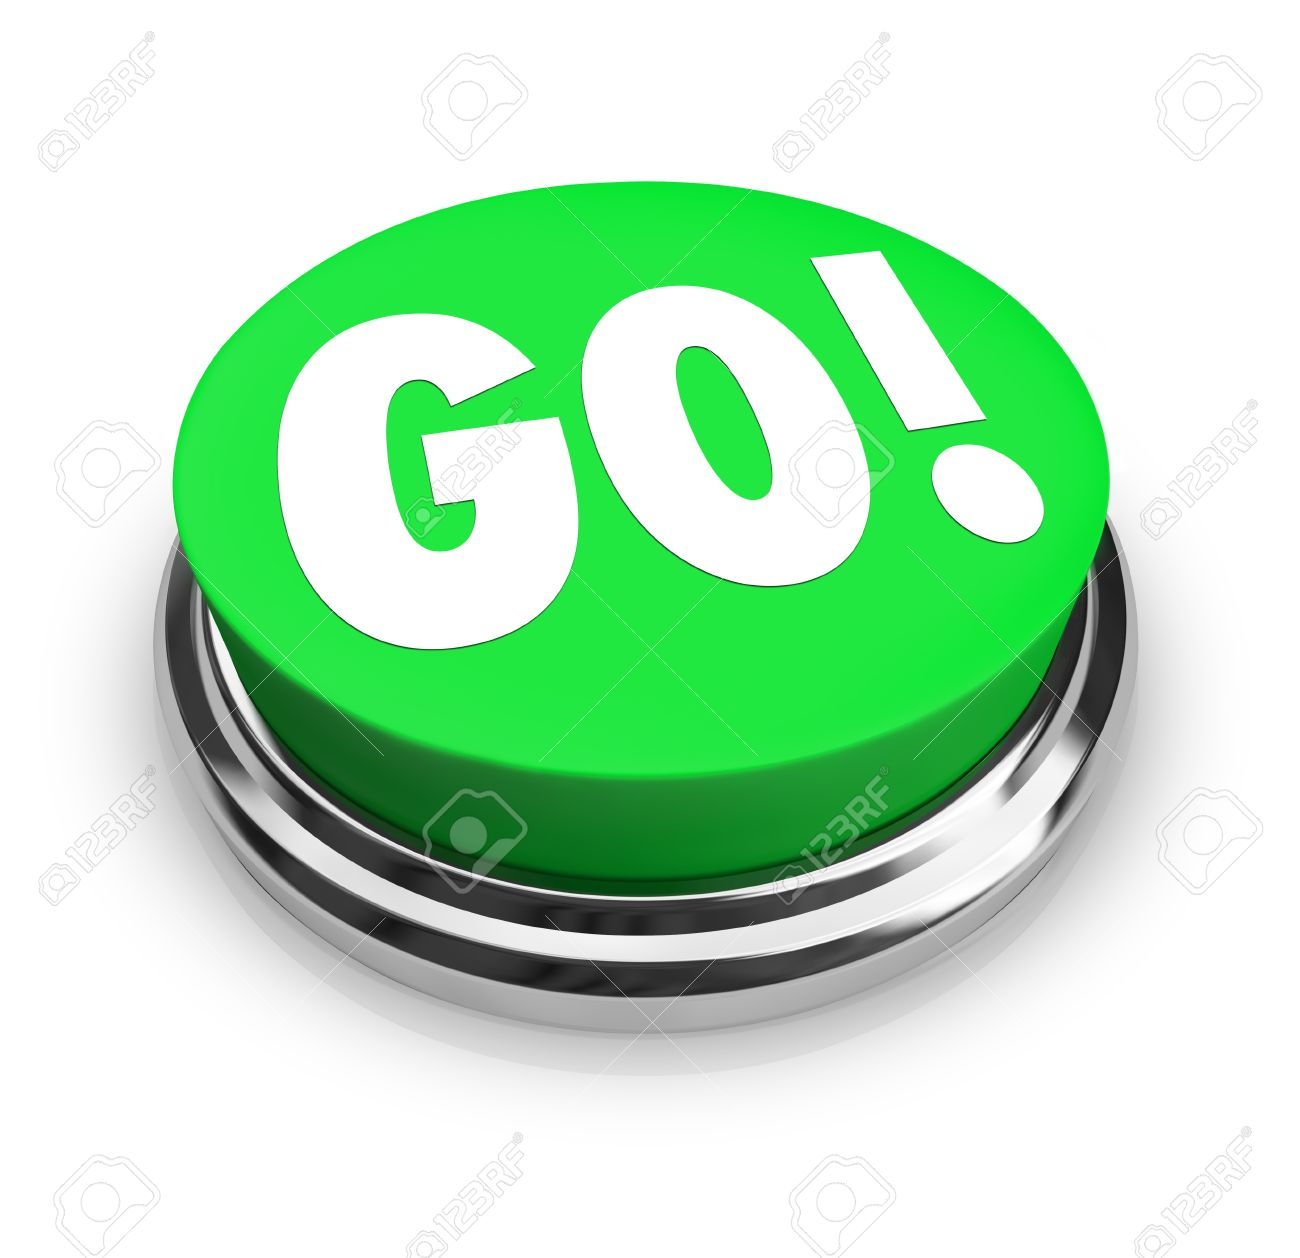 The Word Go On A Big Round Green Button To Represent Starting.